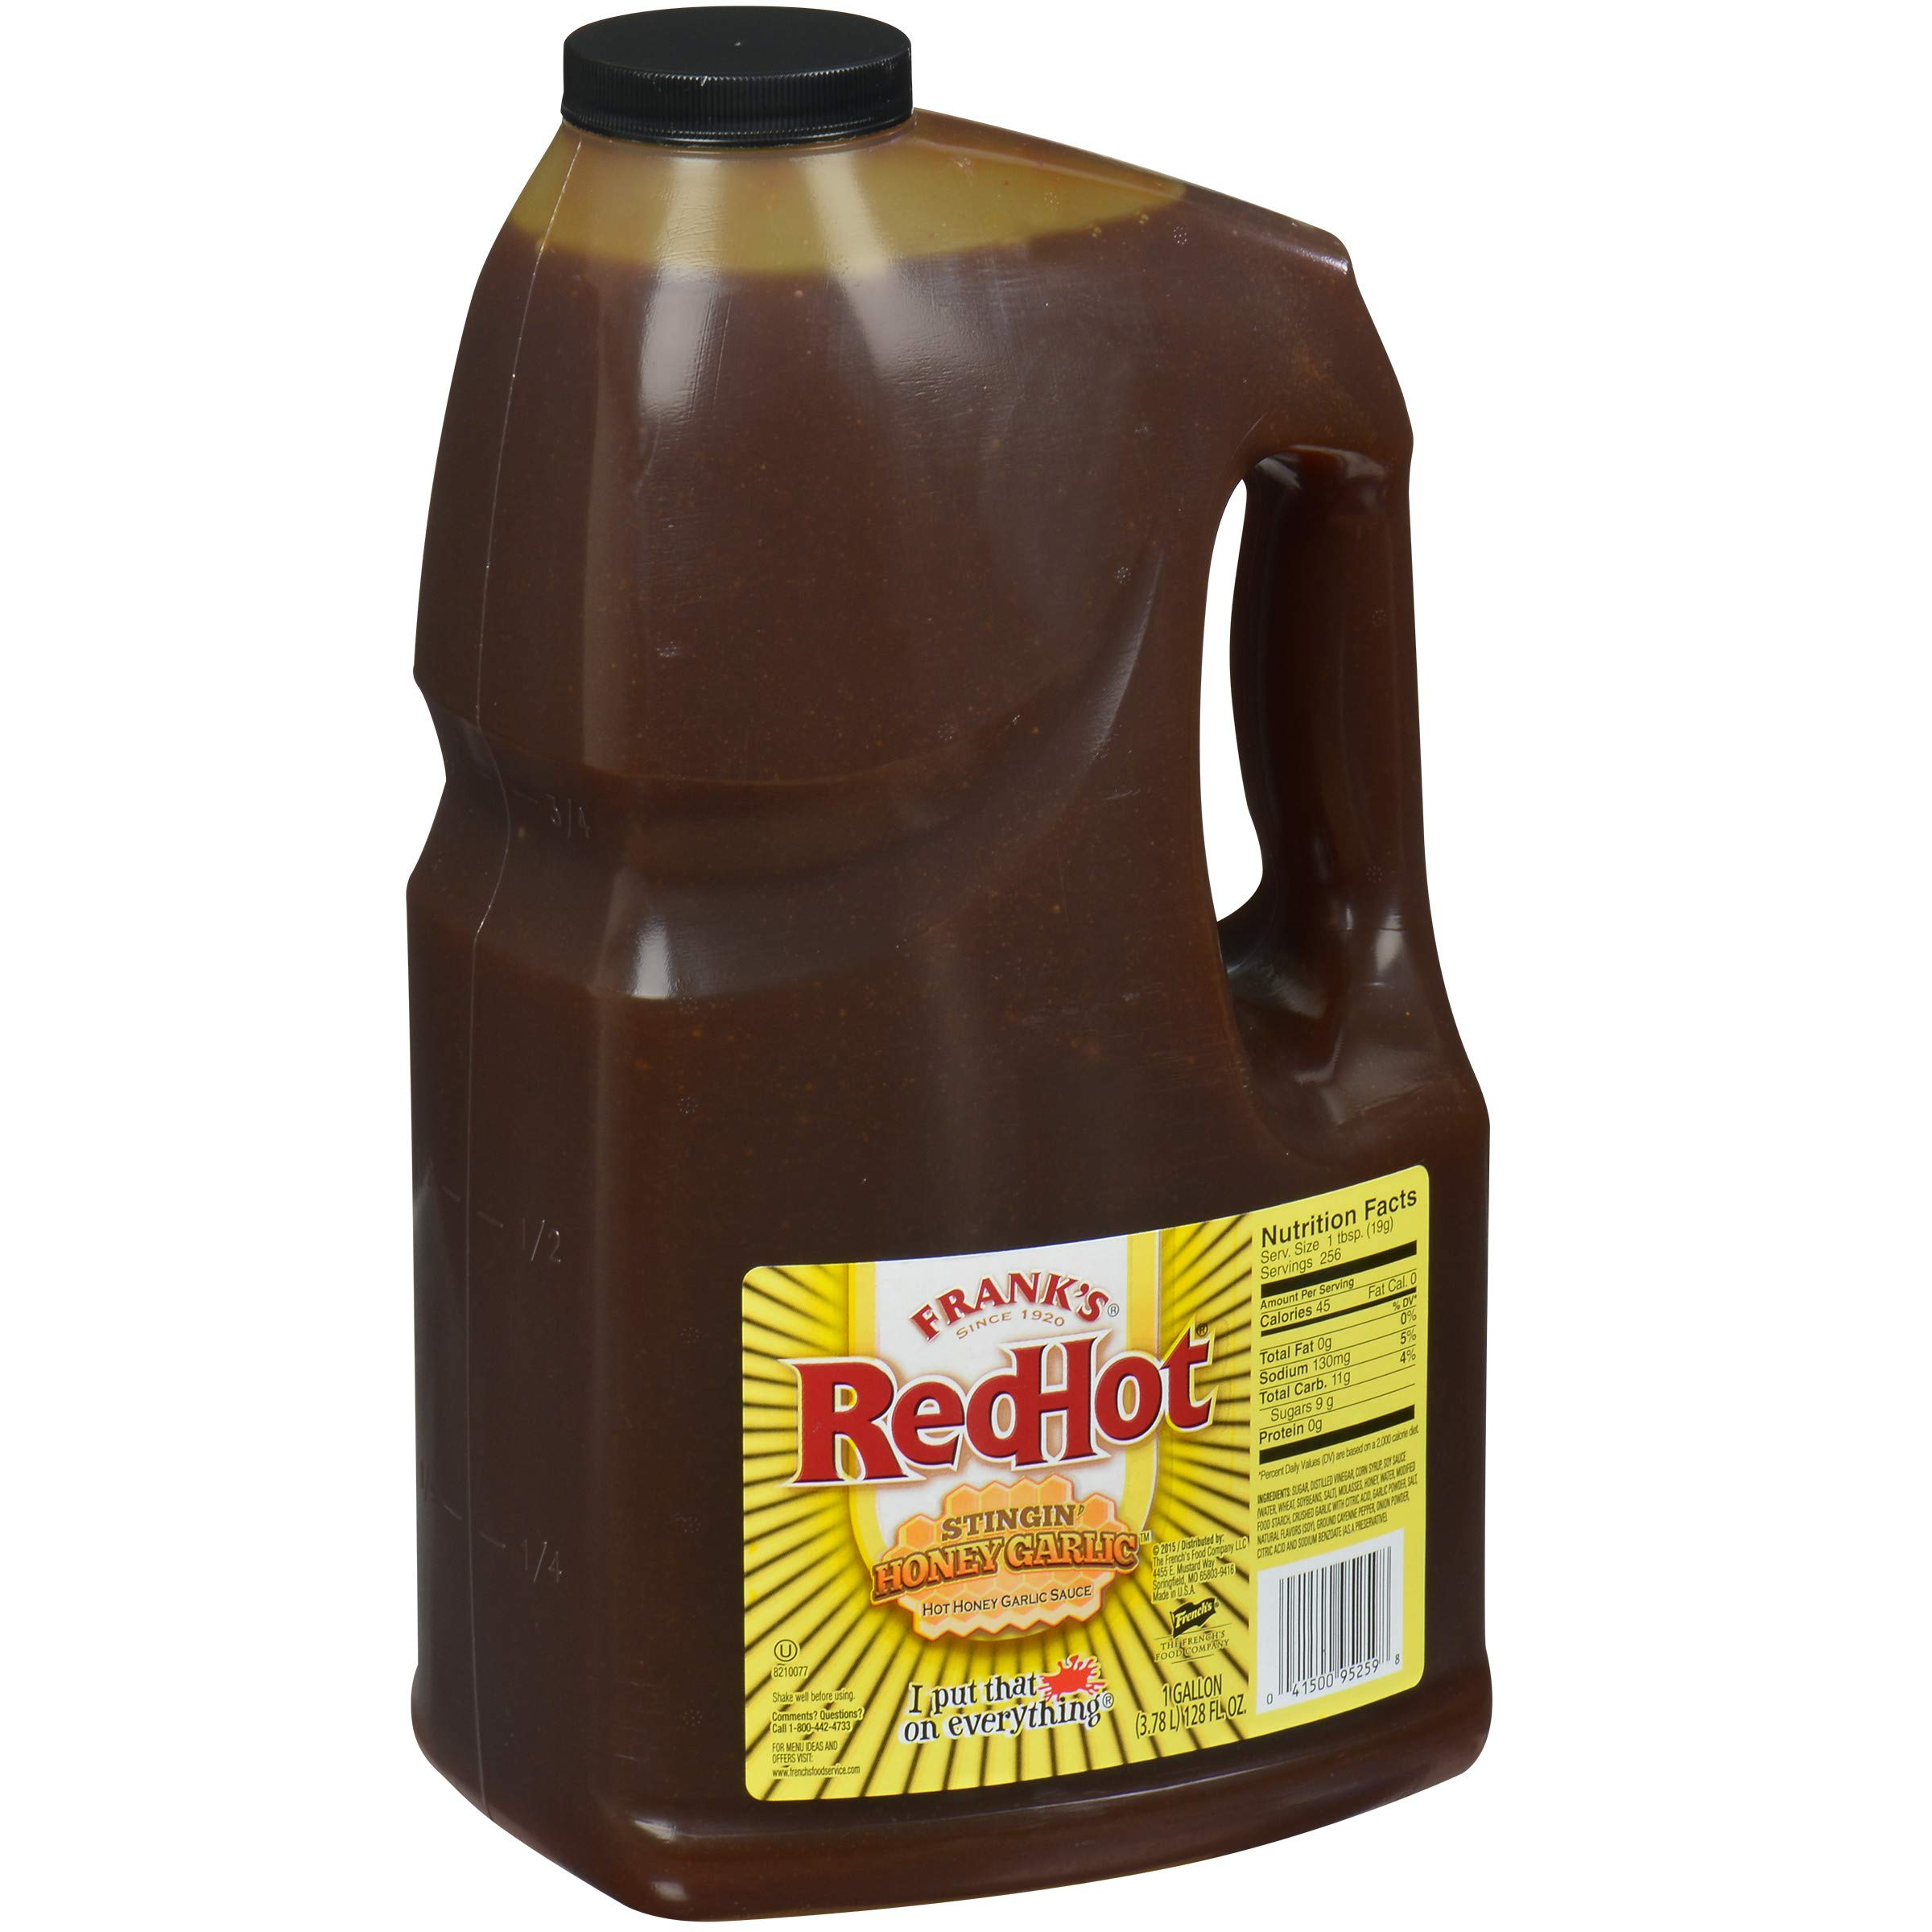 Frank's RedHot Stingin' Honey Garlic Sauce, 1 gal - One Gallon Bulk Container of Stingin' Honey Garlic Sauce for Entrees, Sides, Veggies, Wings, Bar Bites, and Dipping Sauces